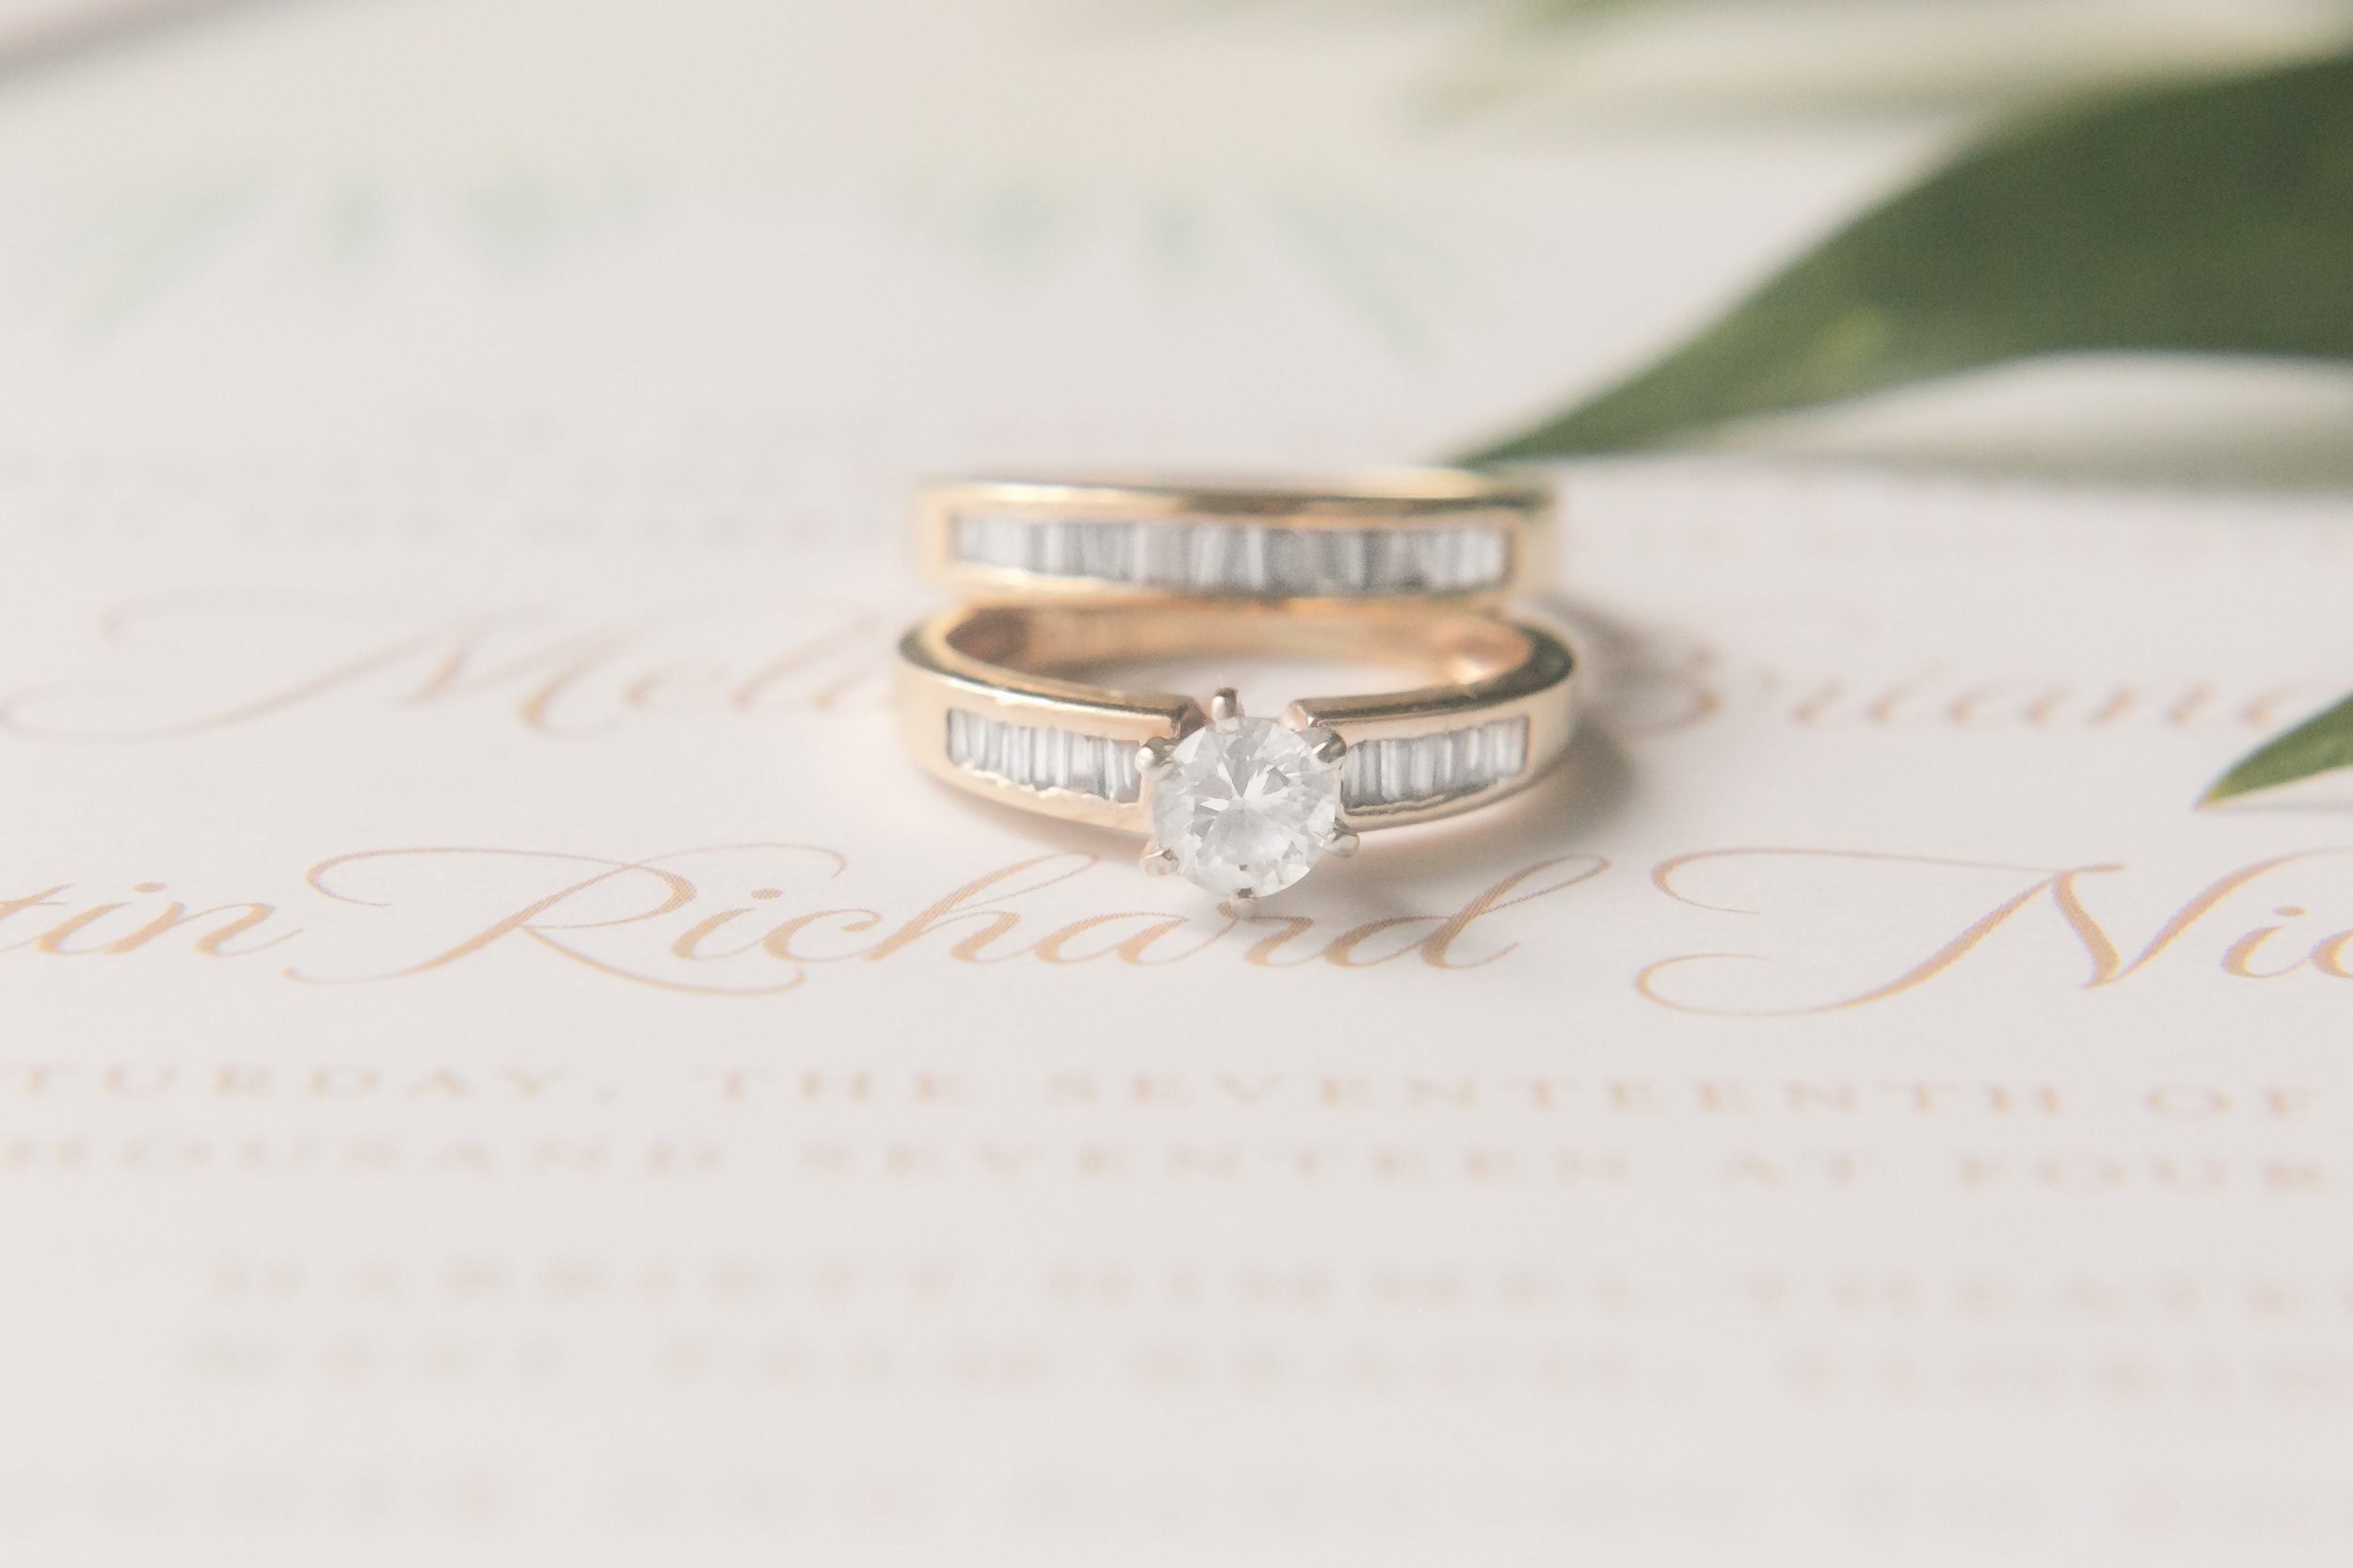 Gold Engagement Rings - Industrial Wedding Decor Ideas